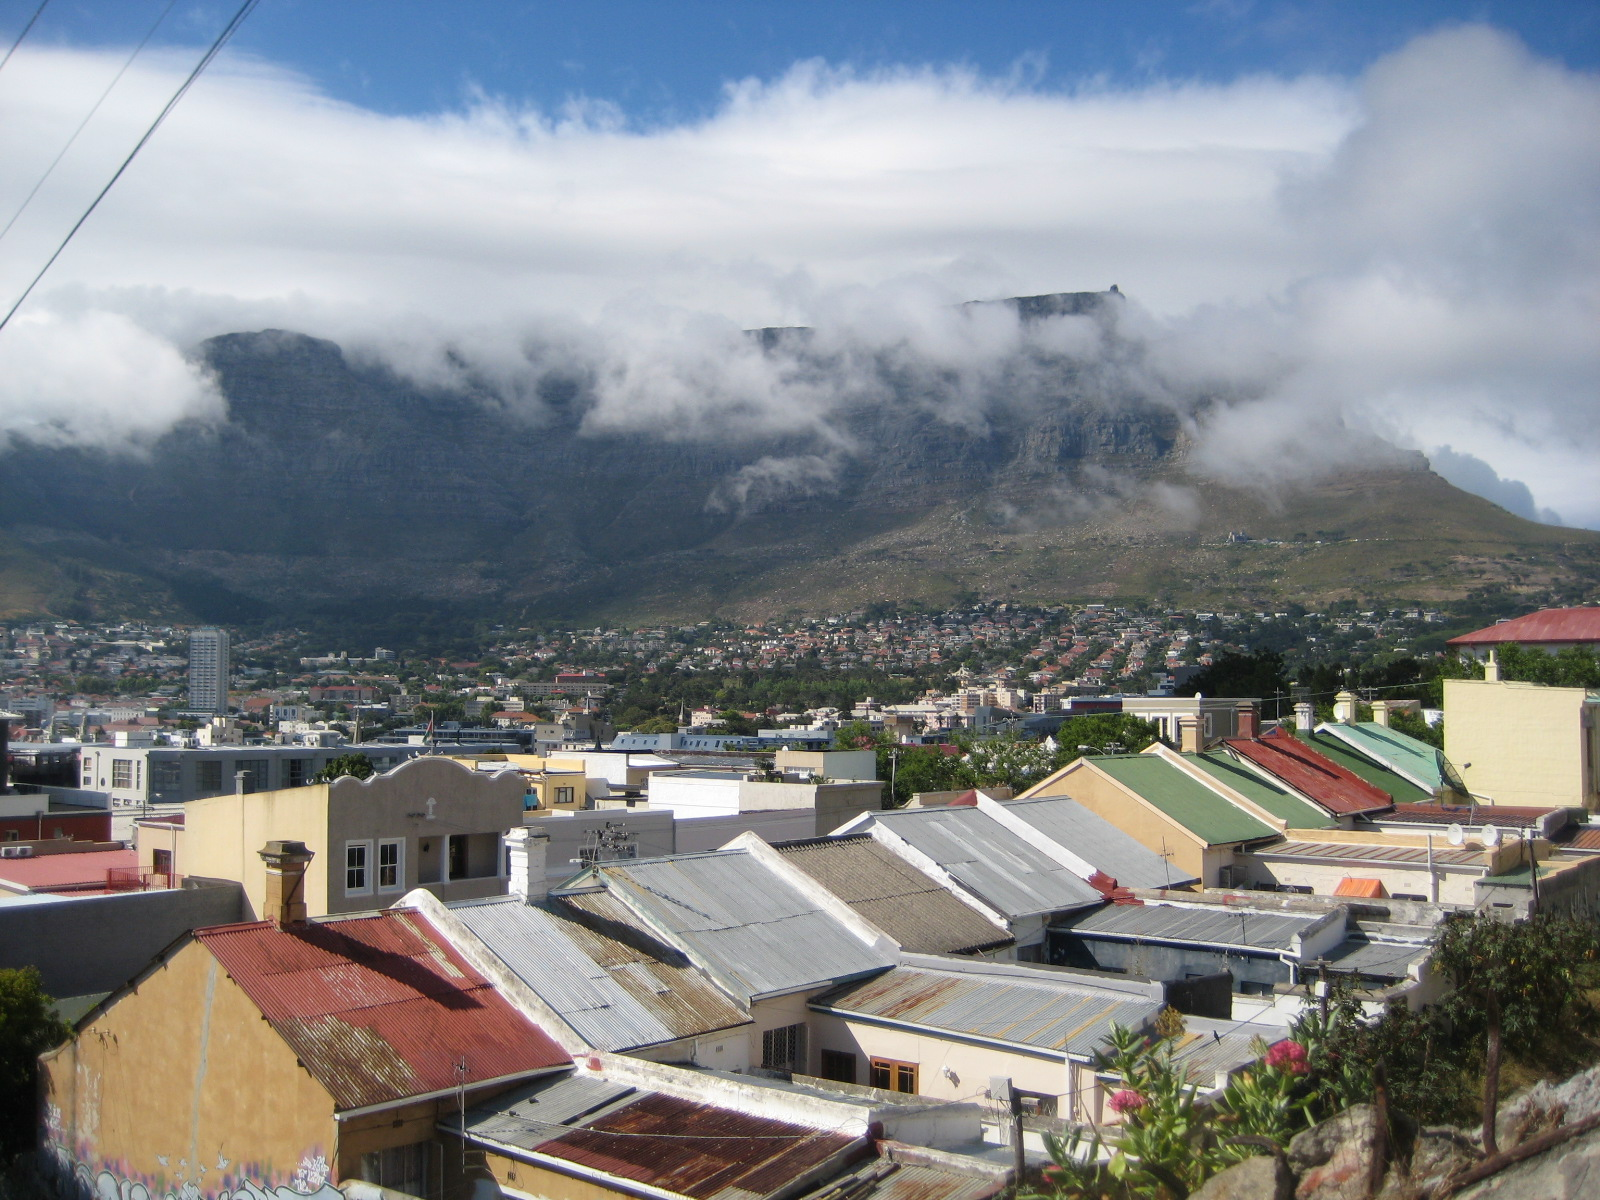 Looking out over the Bo-Kaap in Cape Town, South Africa